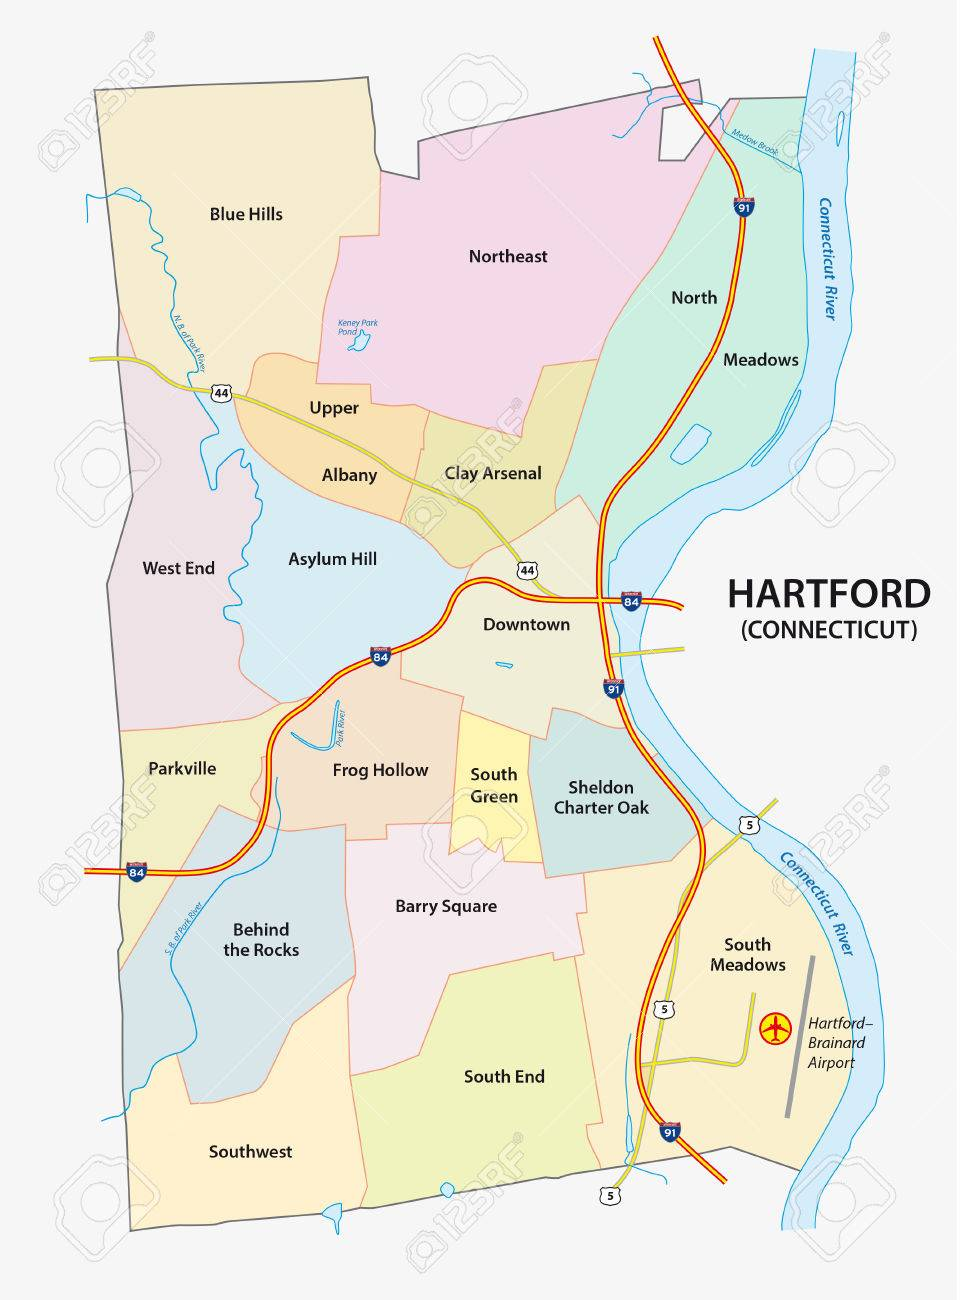 nighborhood map of Hartford, the capital of the US State of Connecticut